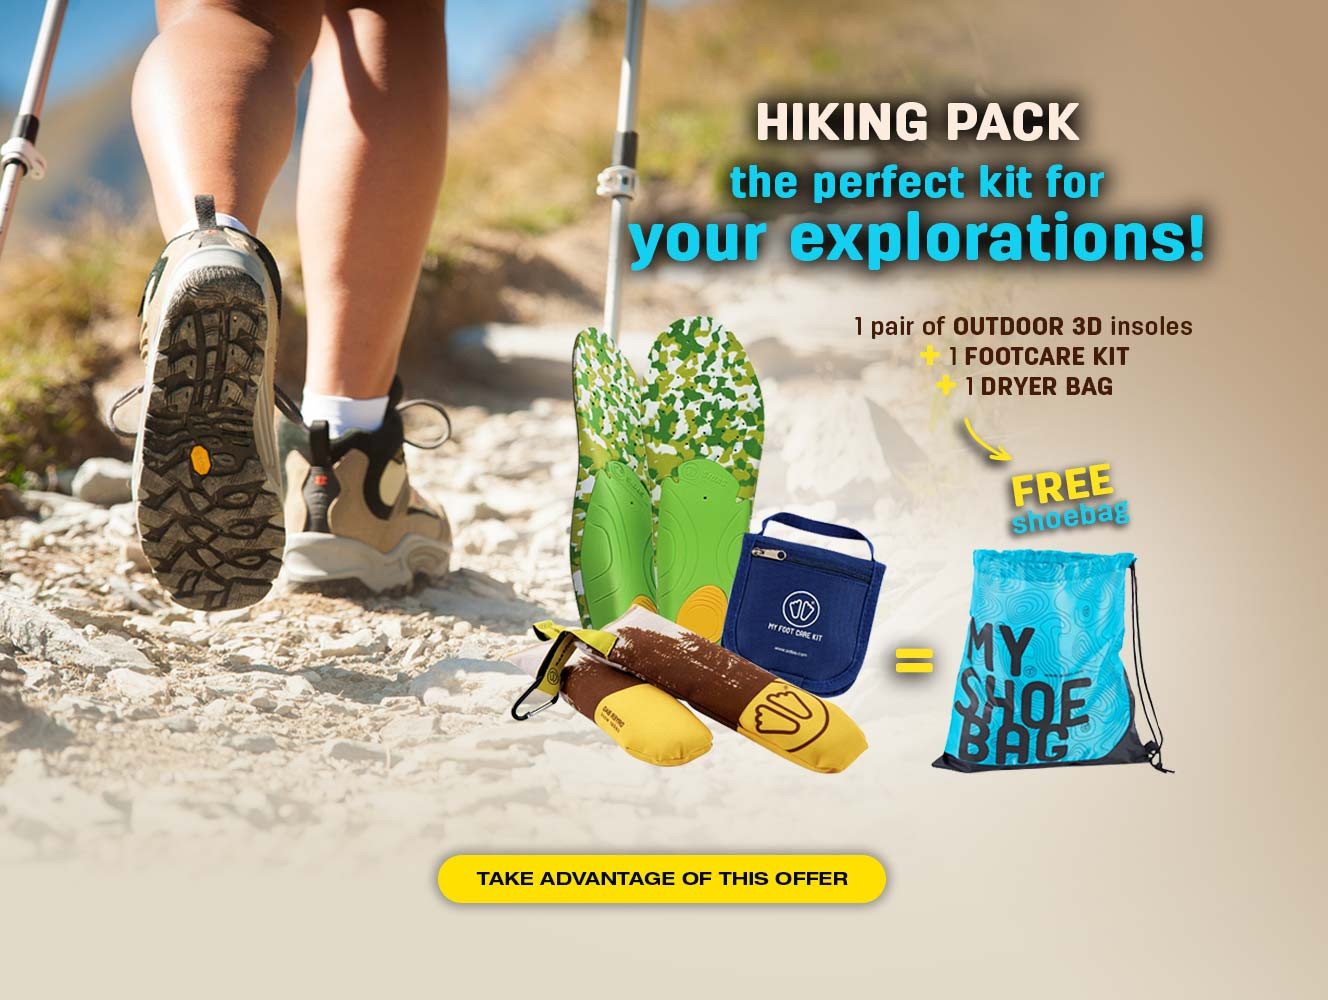 For the purchase of a hiking pack, we offer you your shoebag!